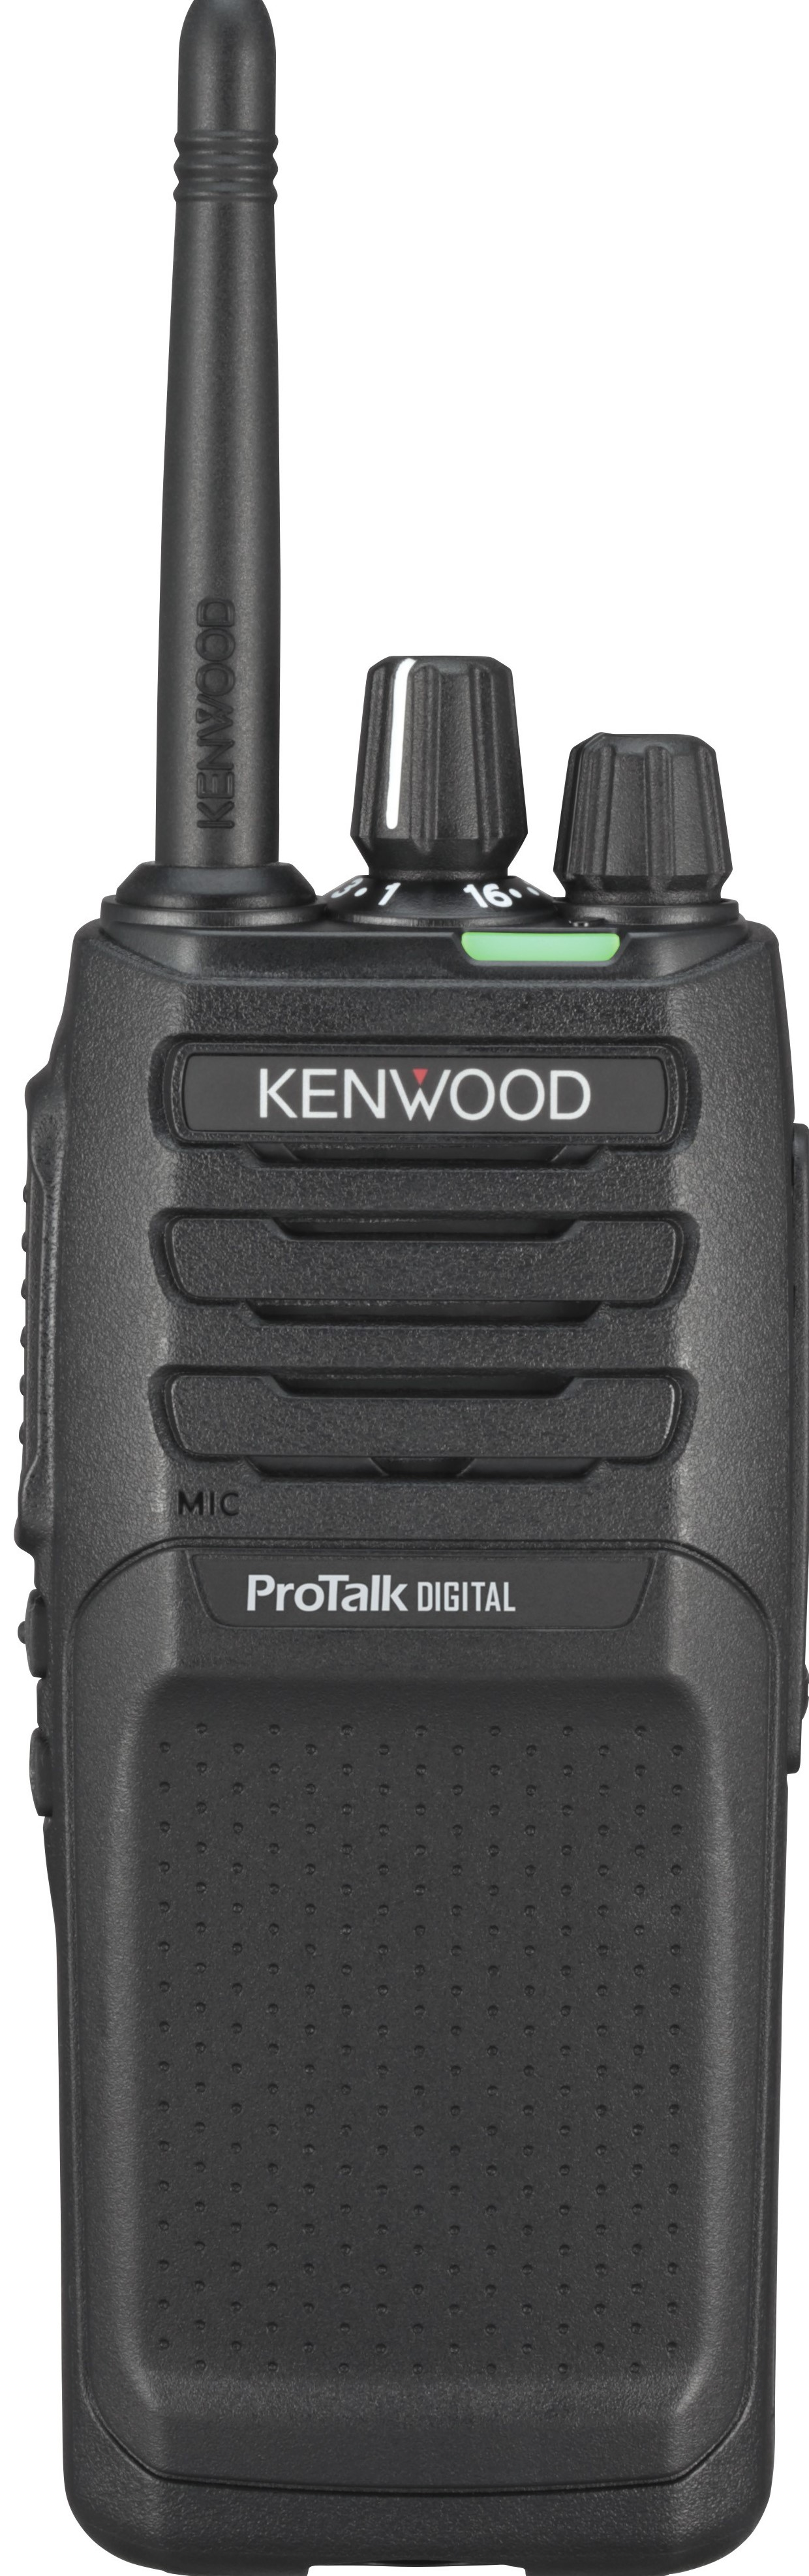 walkies4events/verkoop/walkietalkie/kenwood/TK3701D